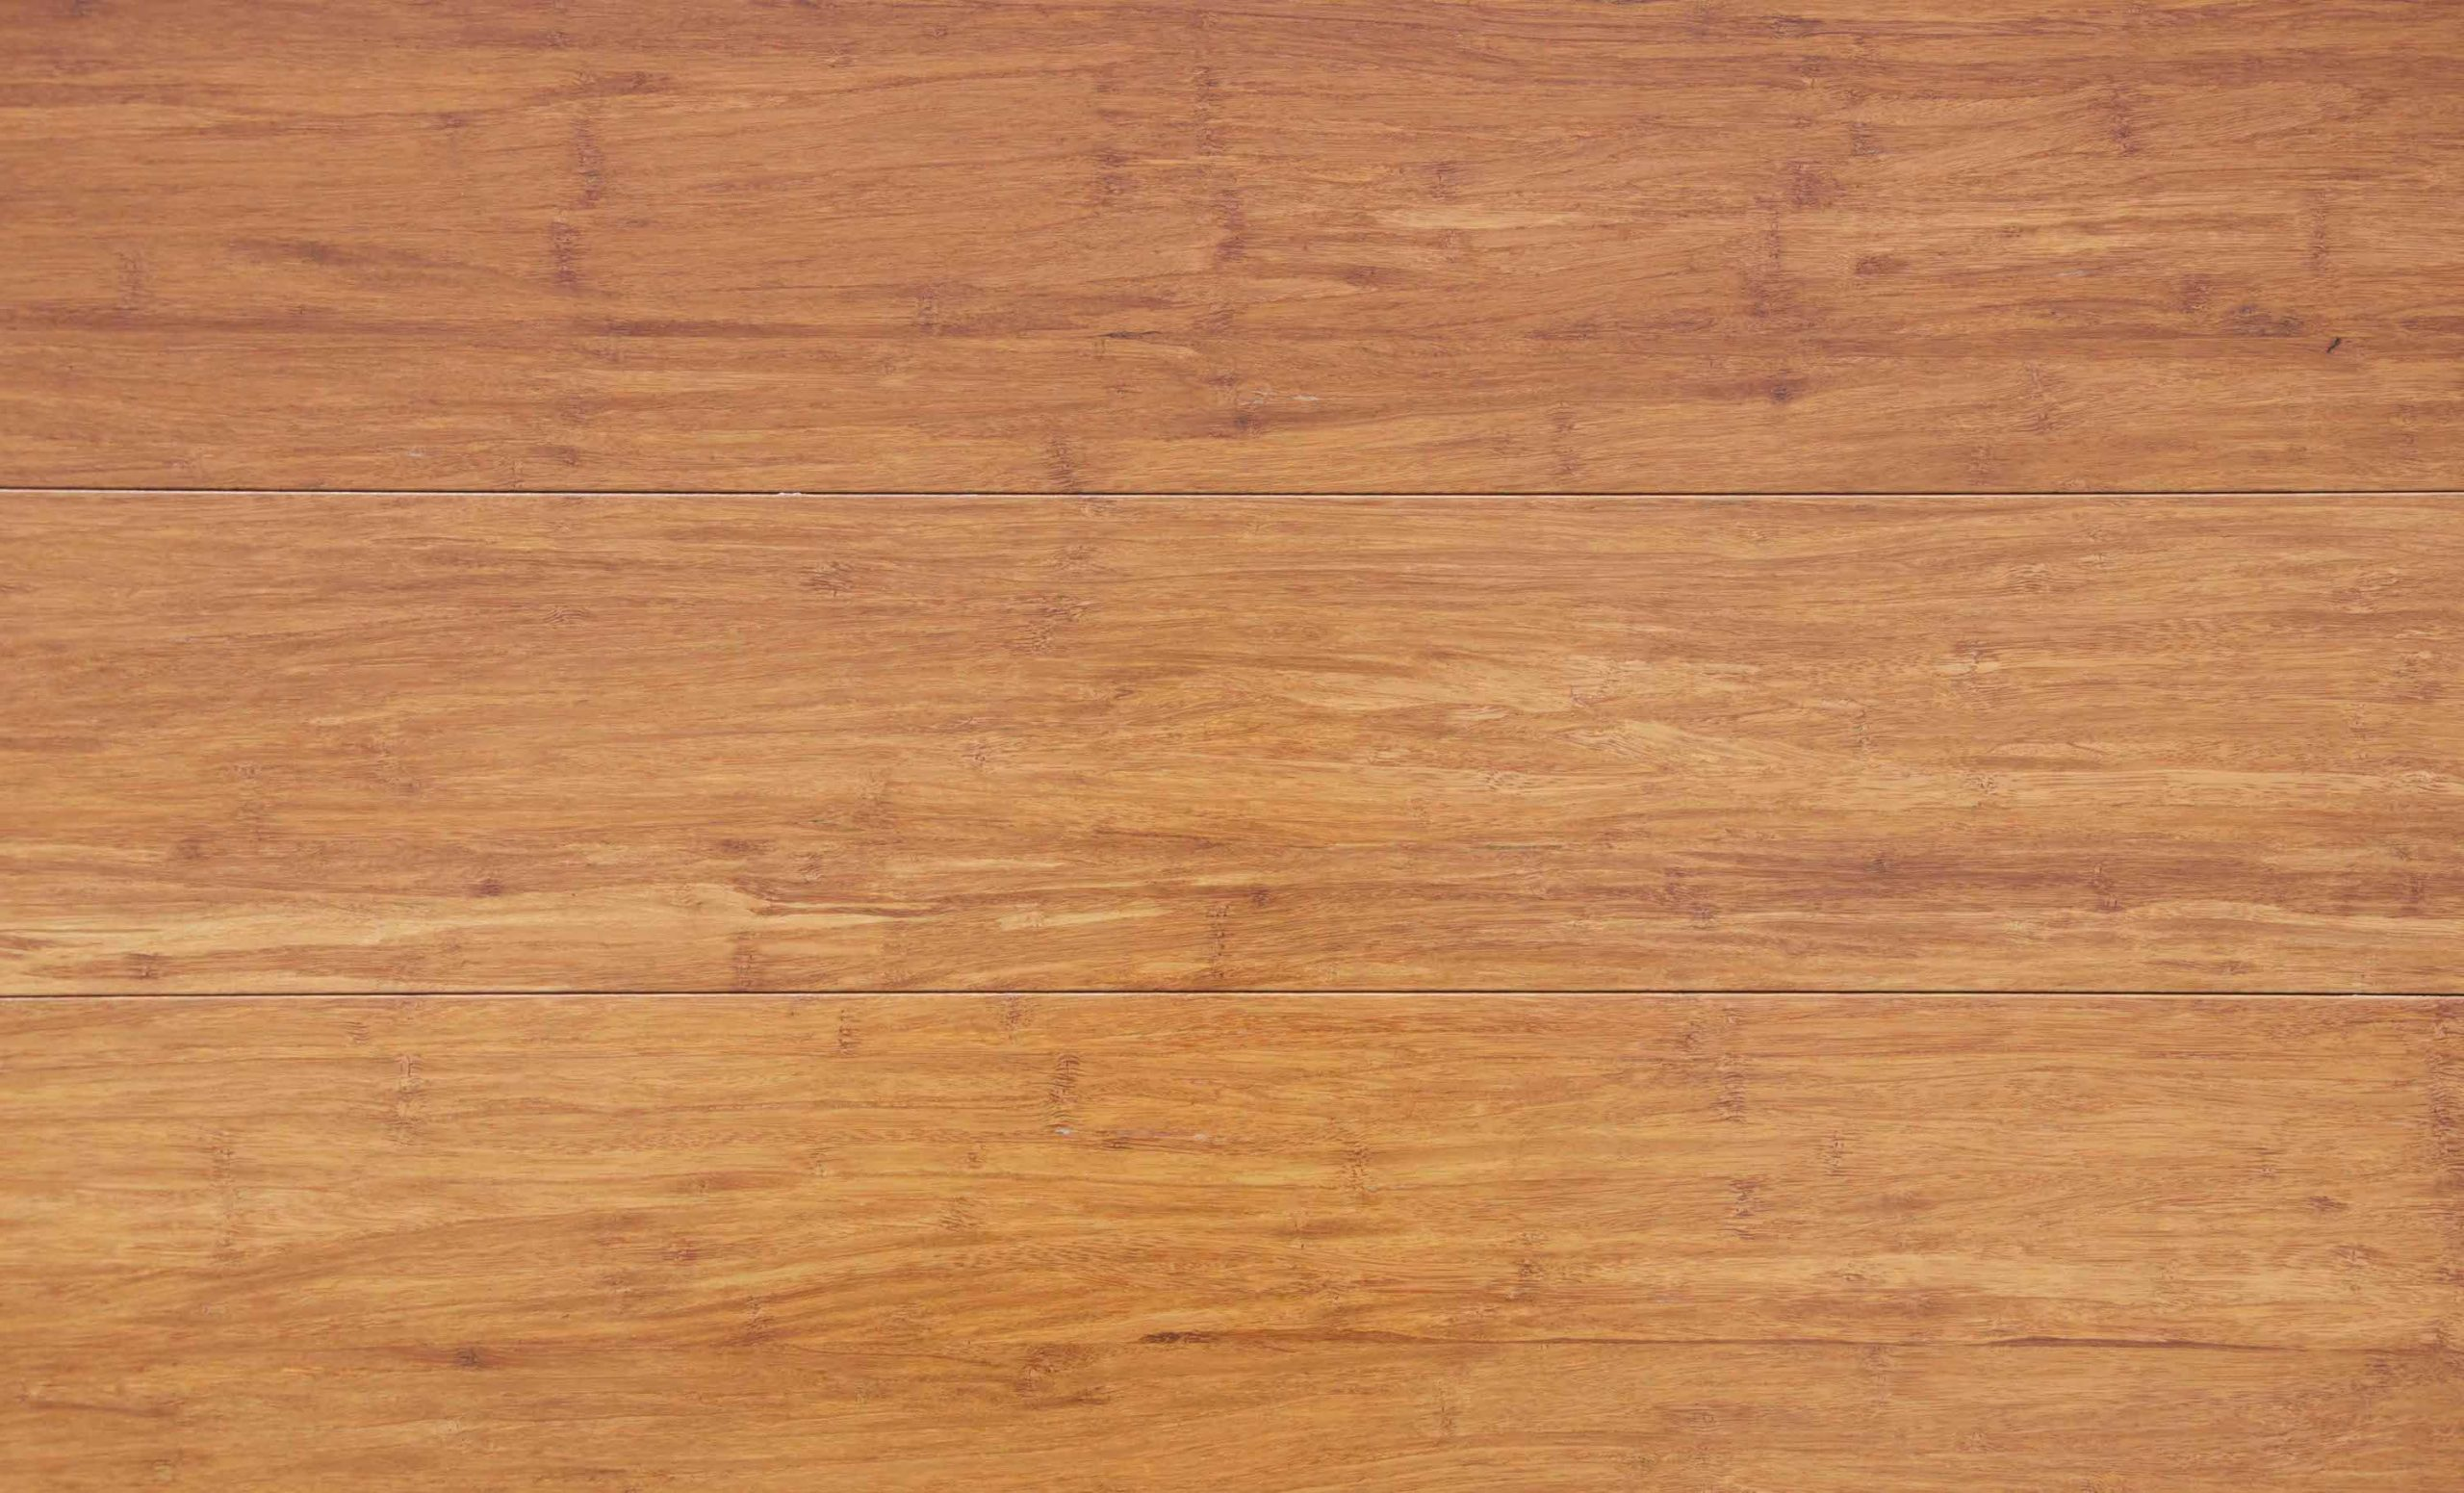 Bamboo Flooring Strand Woven Caramel Click Profile Page Of ... tout Parquet Bambou À Clipser